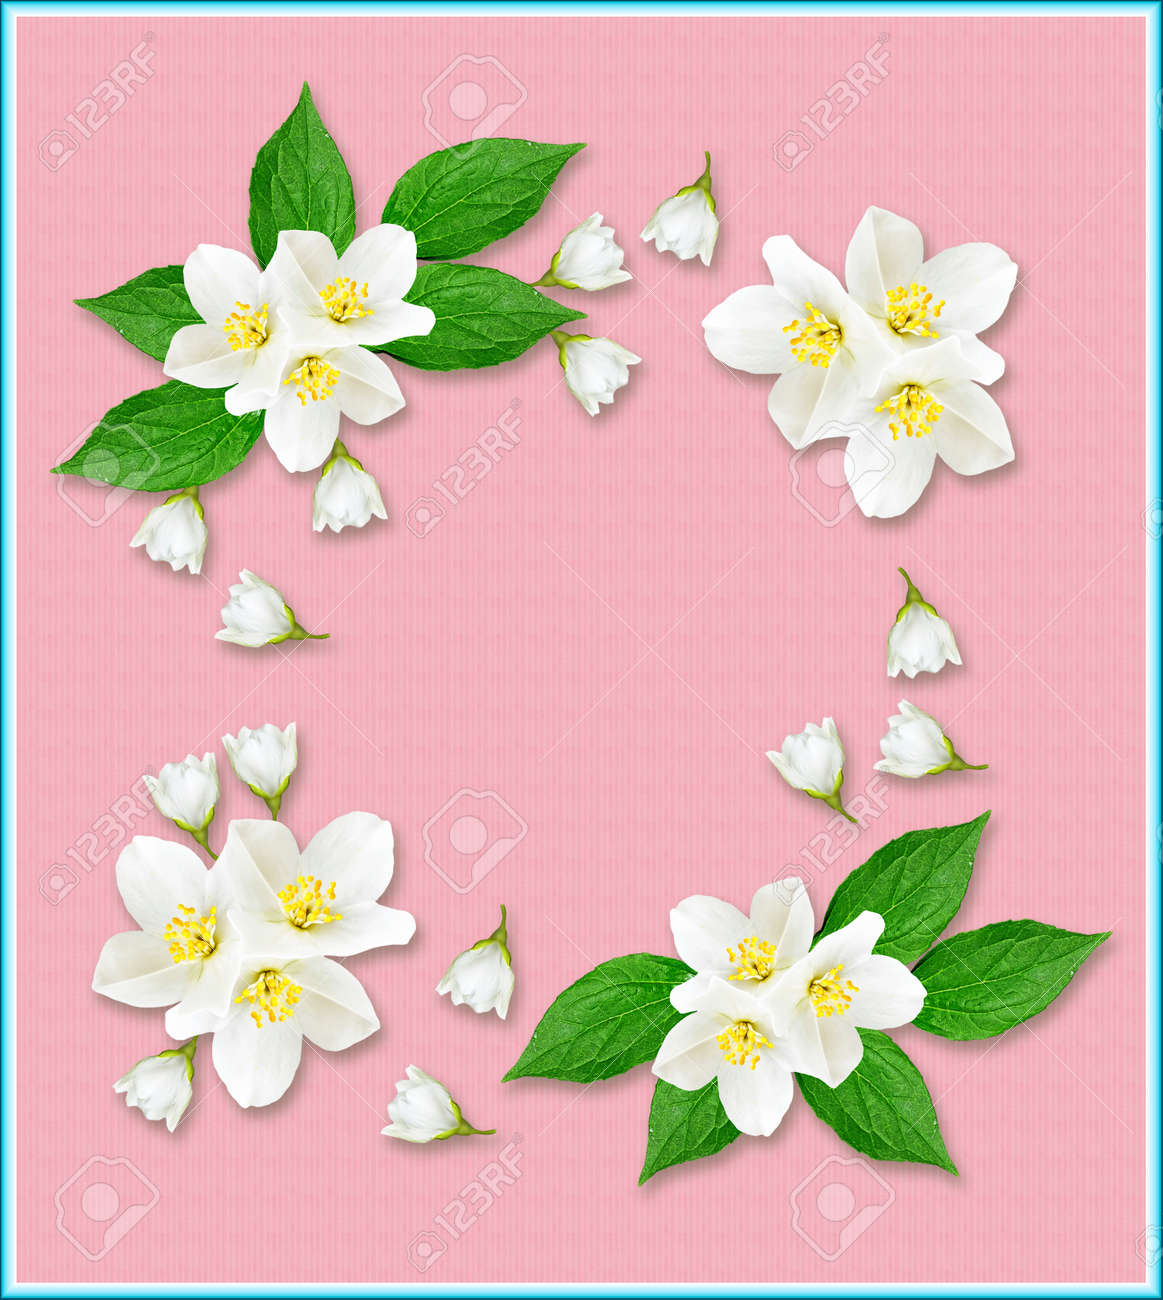 Branch Of Jasmine Flowers Isolated On Pink Background Stock Photo